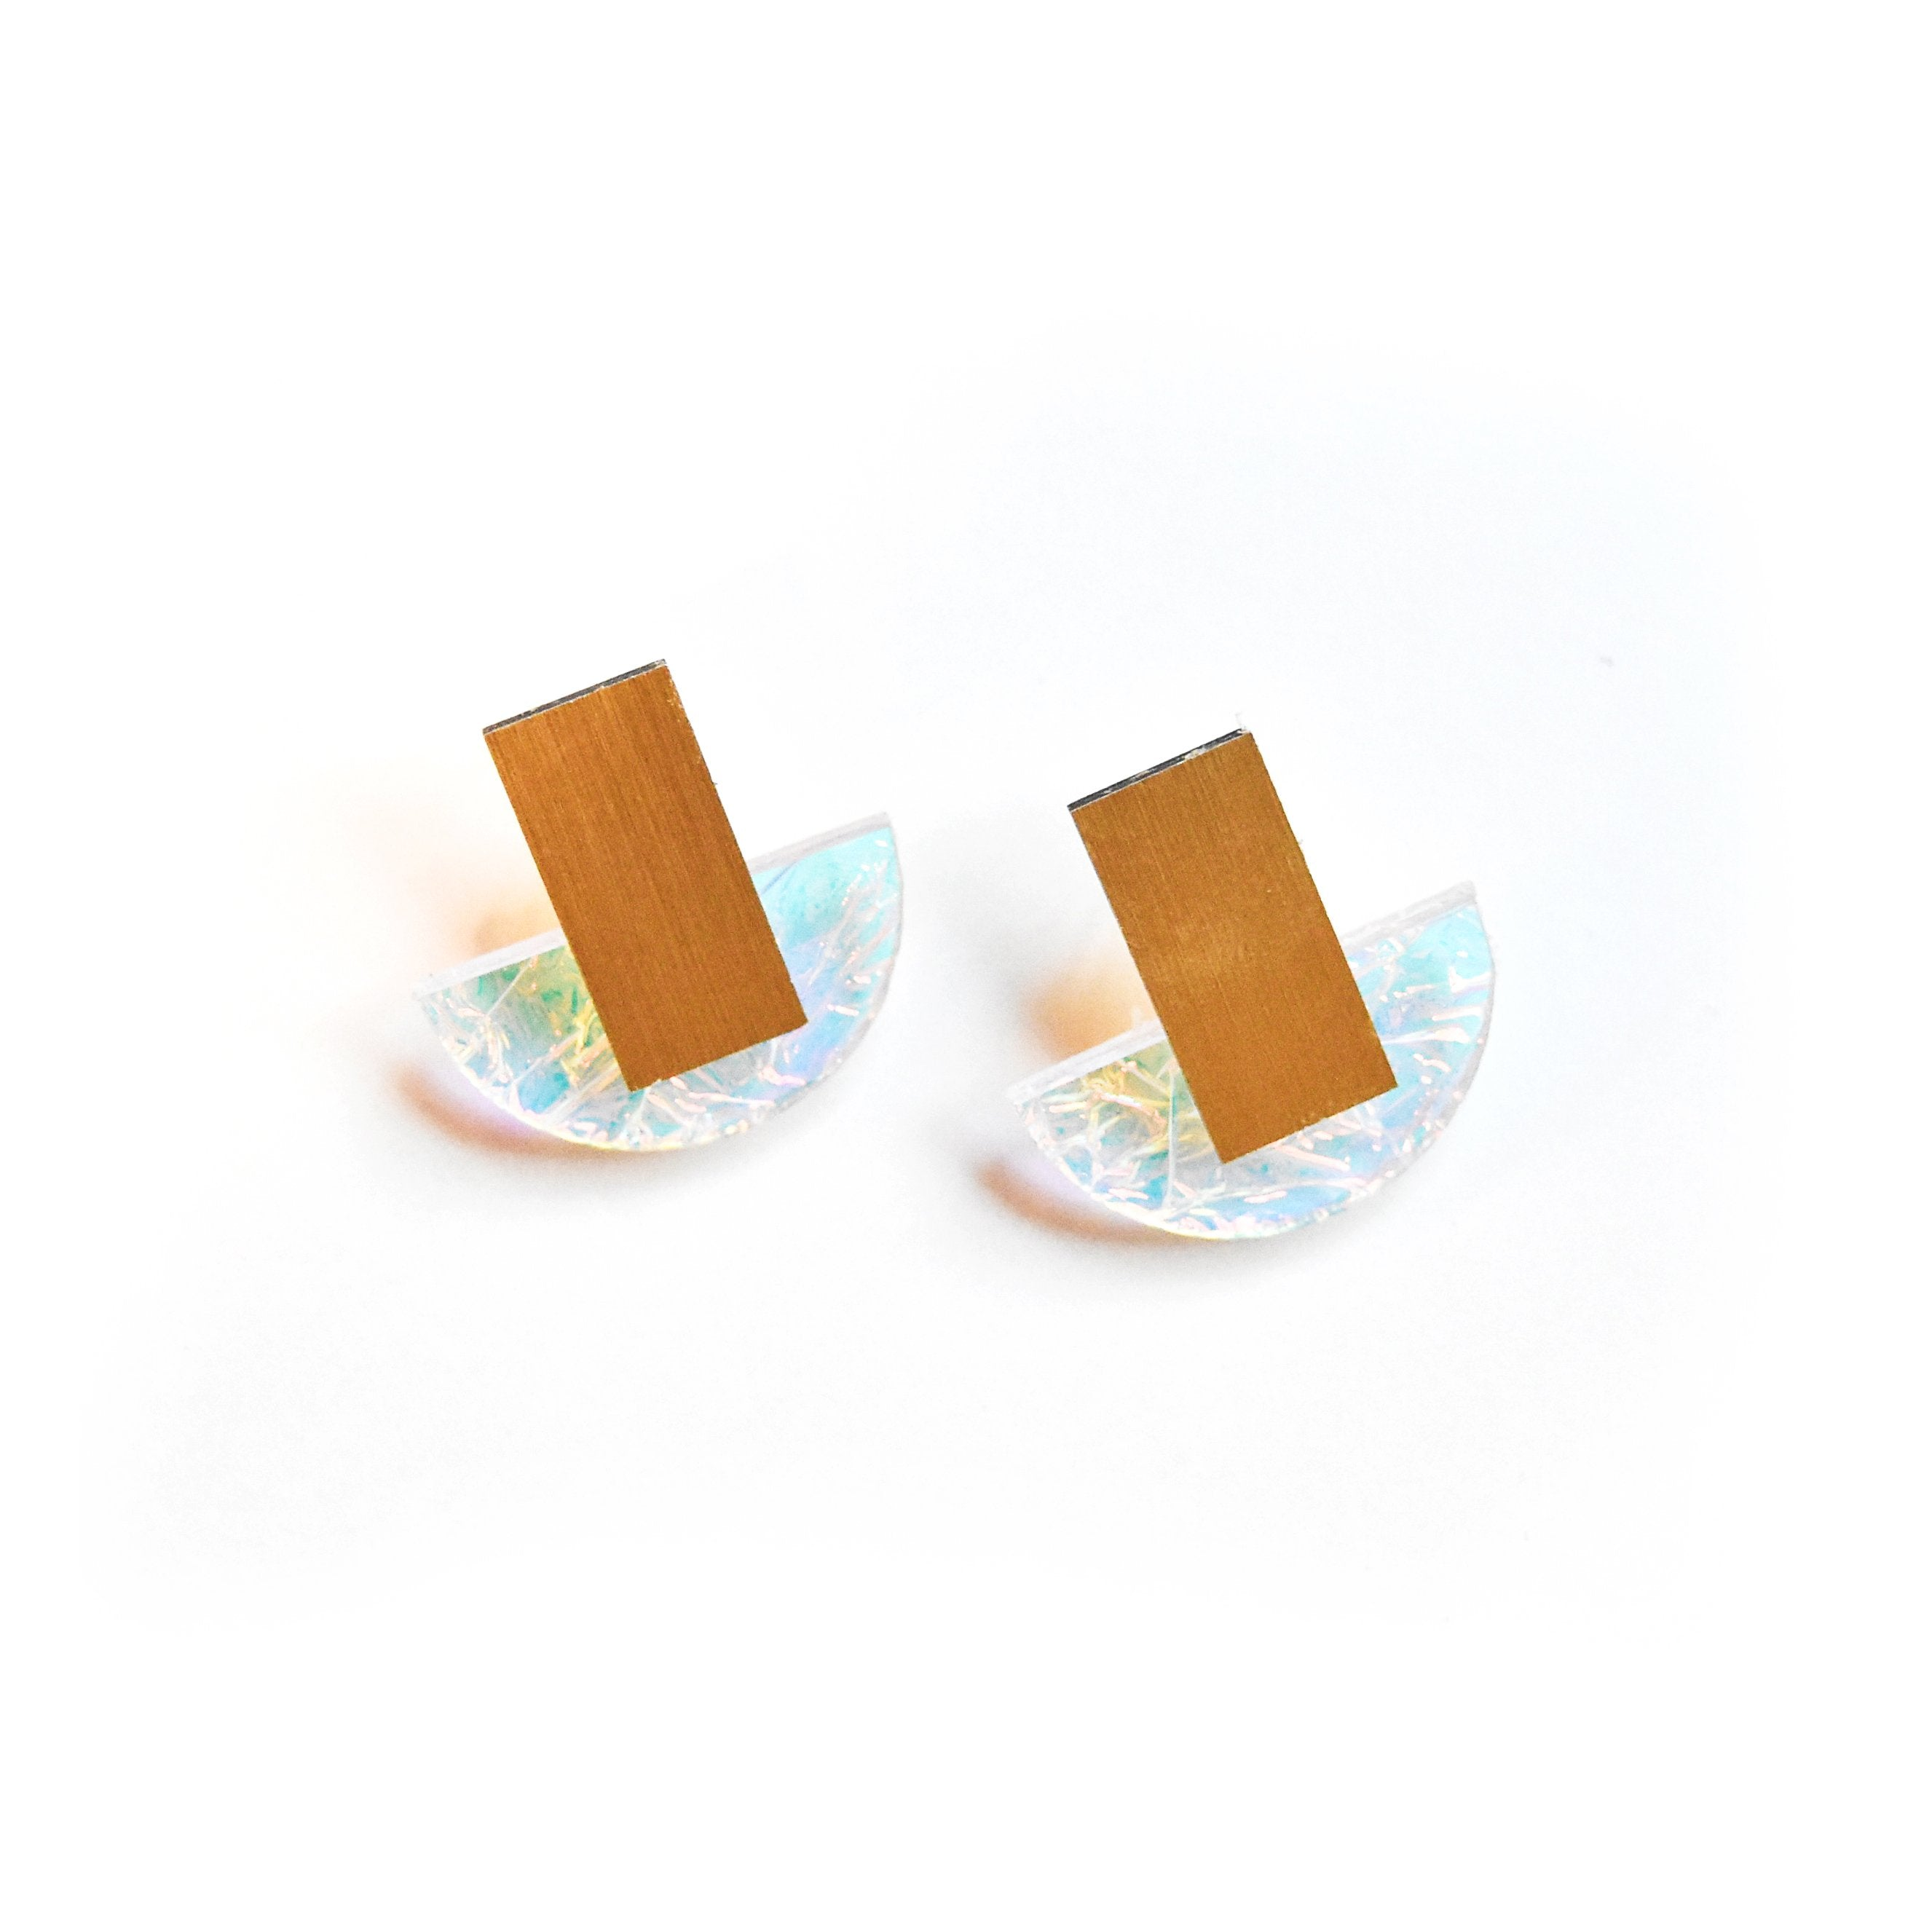 Ecoresin Earrings - Arc Stud